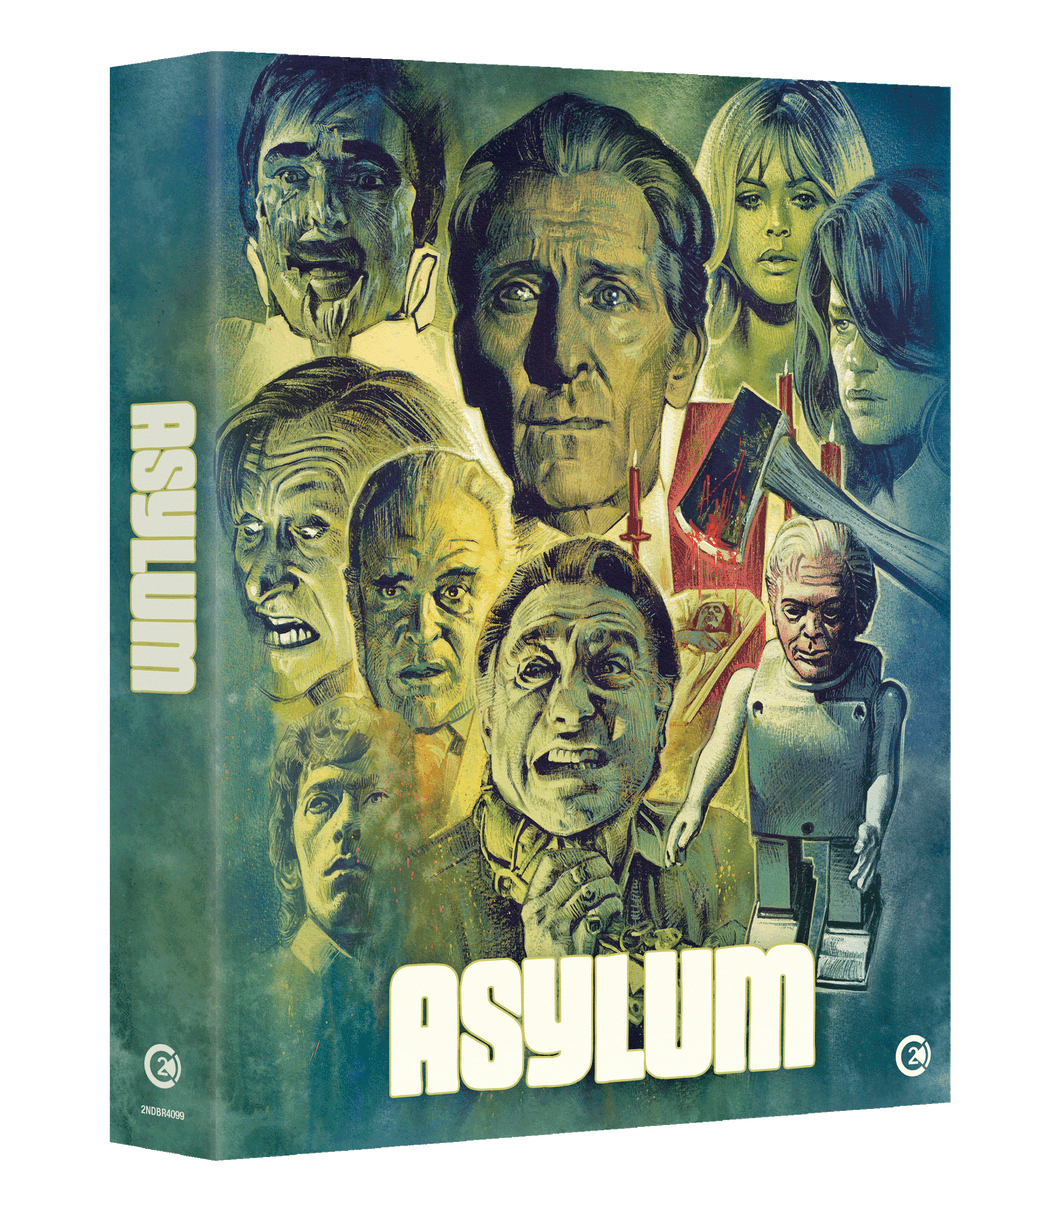 Asylum Limited Edition - OUT OF PRINT